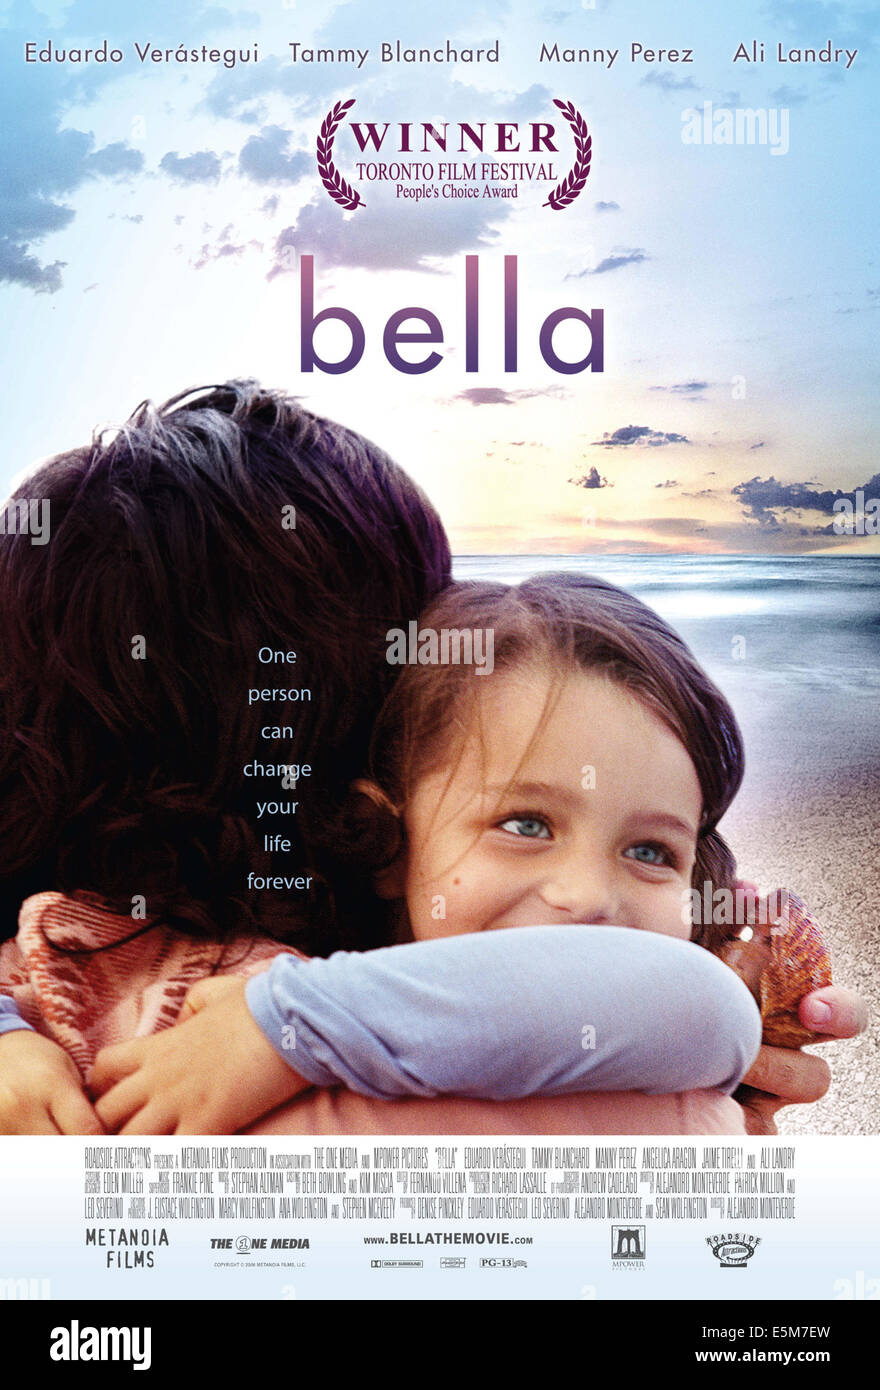 BELLA, US poster art, 2006, ©Roadside Attractions/courtesy Everett Collection - Stock Image